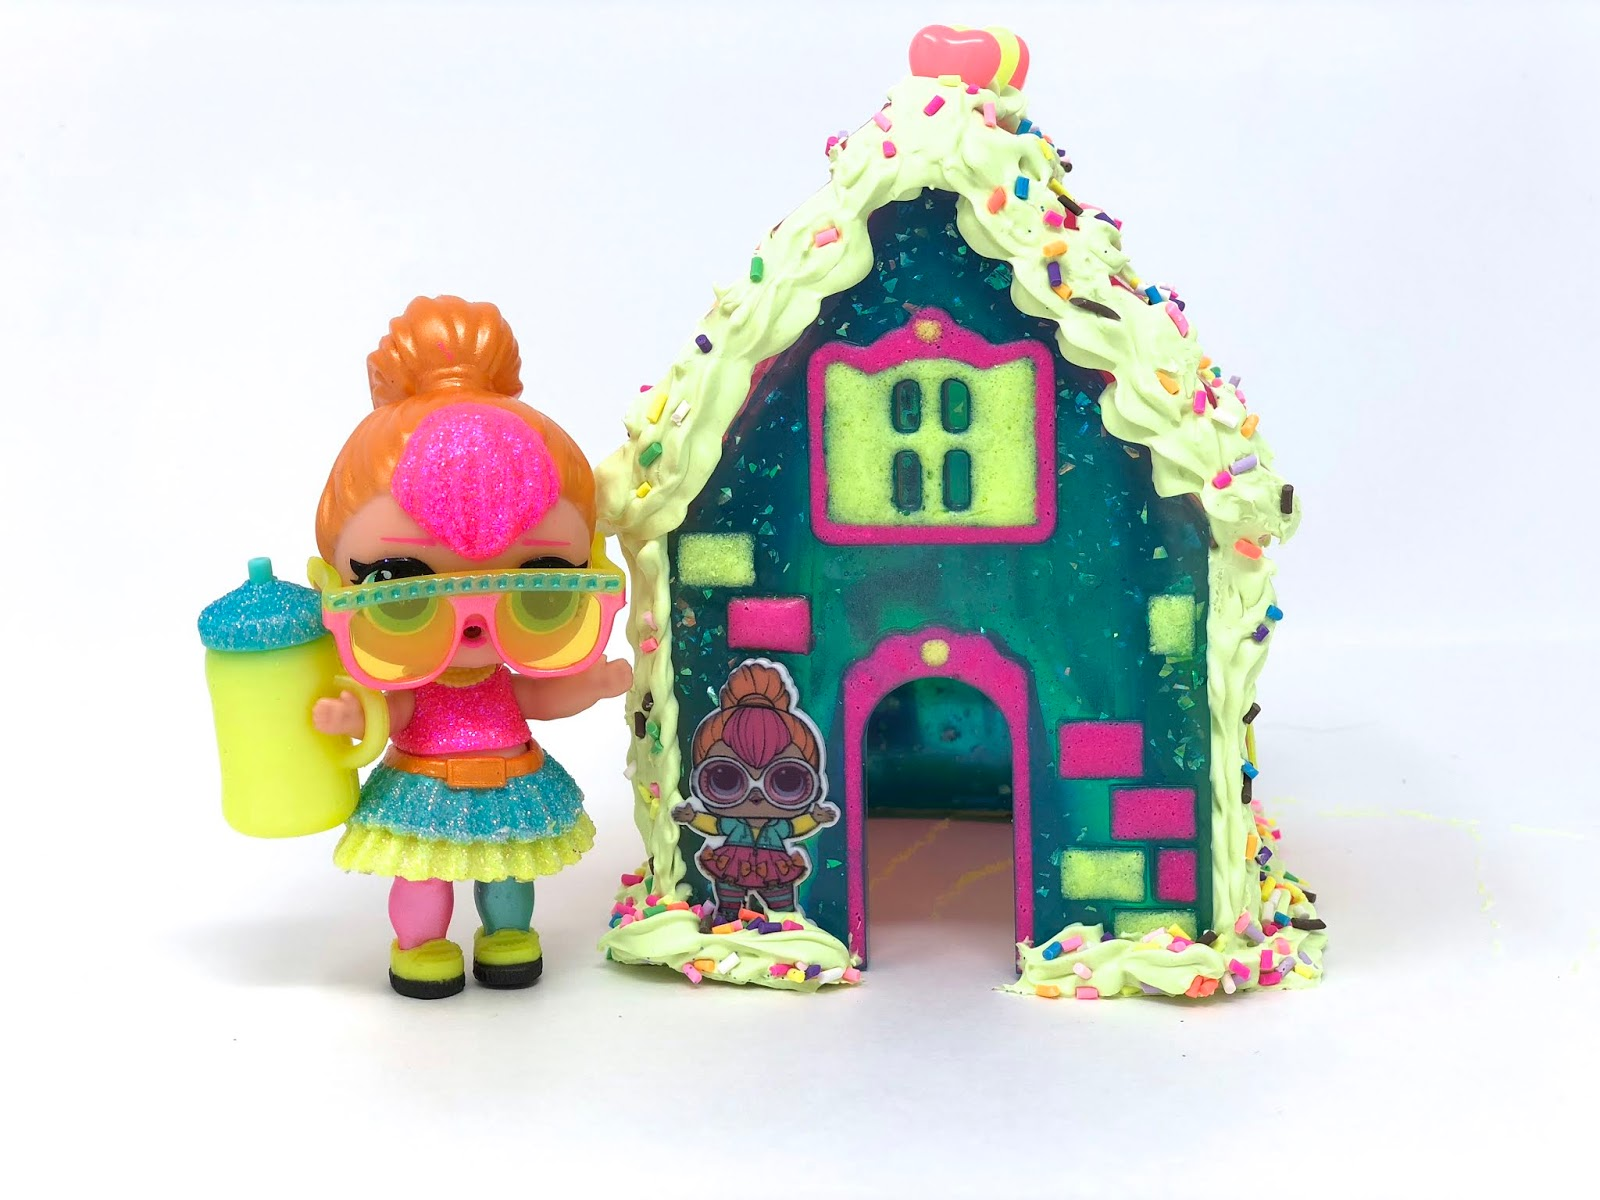 LOL Surprise Dolls Neon QT Decoden Resin Gingerbread House mama sahrang